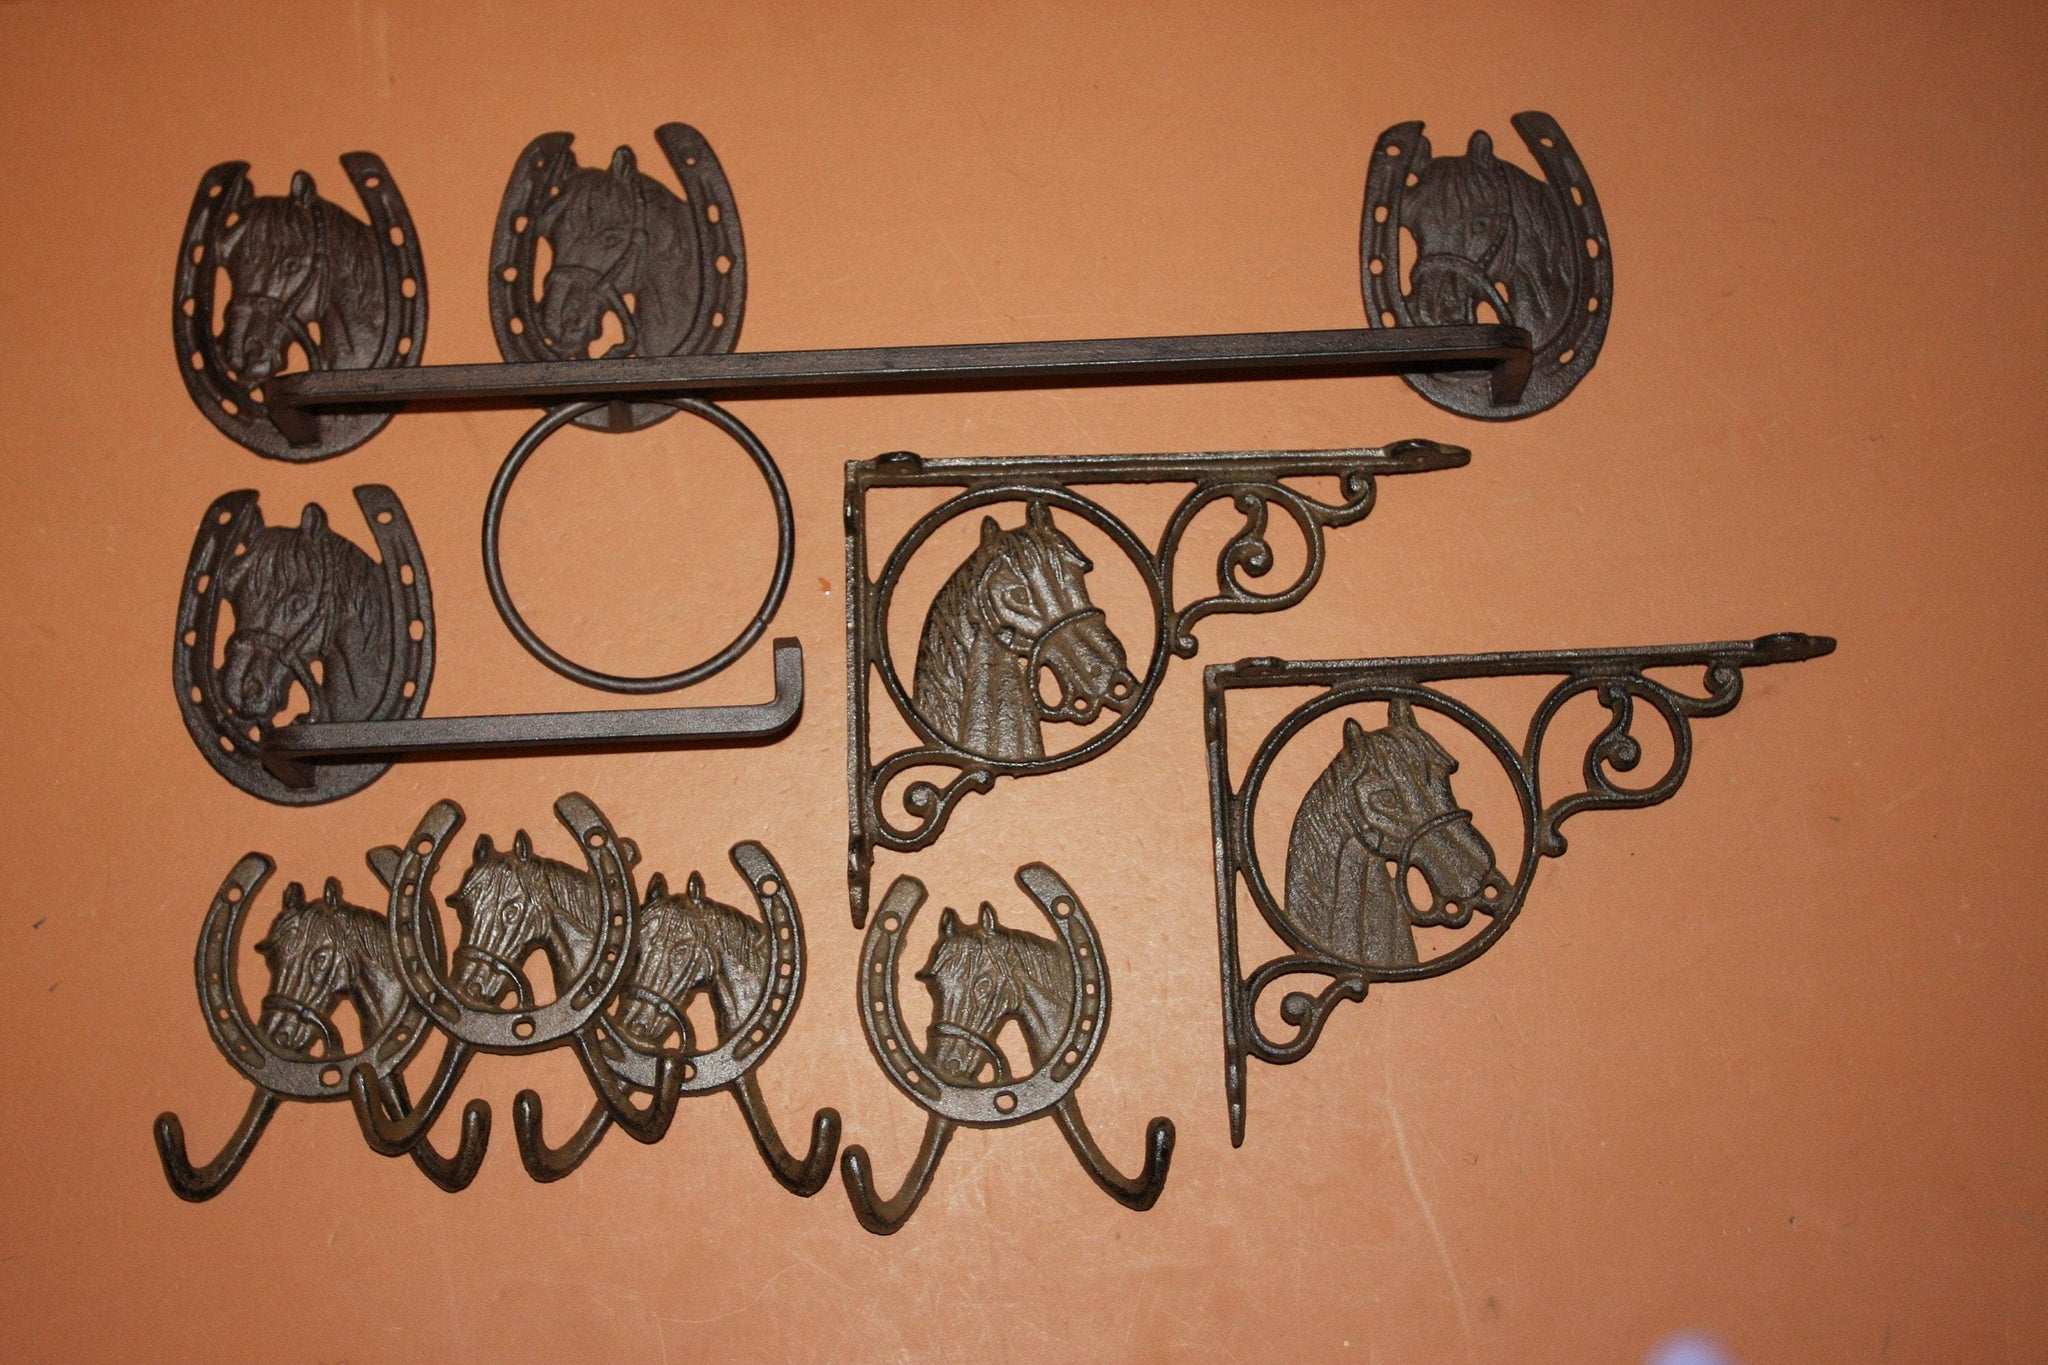 9) Rustic Western Horse Bath Accessories Cast Iron Set of 9 Towel Bar Ring TP Holder Towel Hooks Bath Shelf Brackets, 2-H